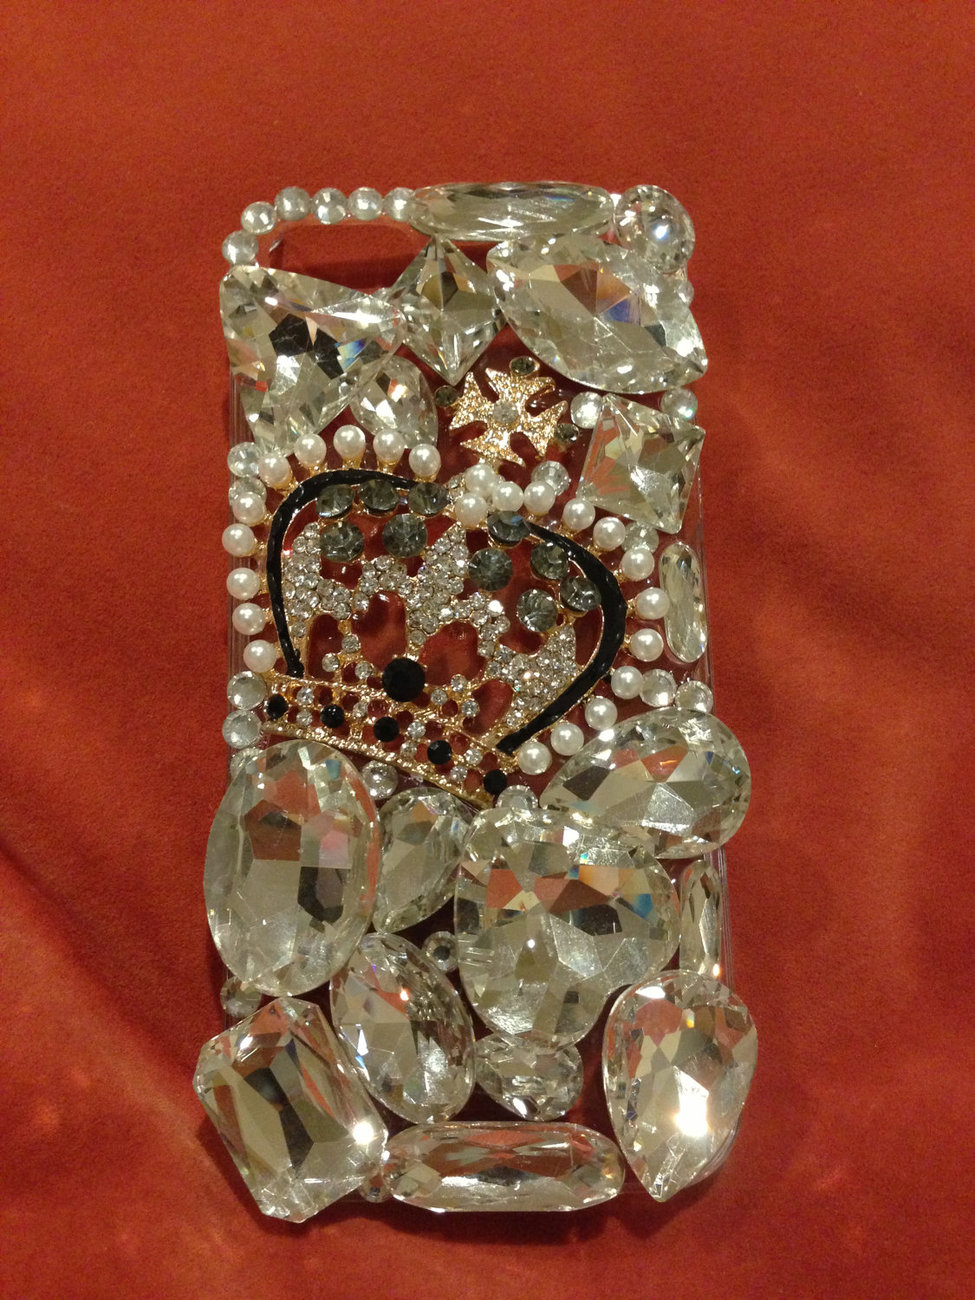 3D Luxury Bling Diamond Crystal Crown Clear Case For iphone 5 Very Beautiful and image 2